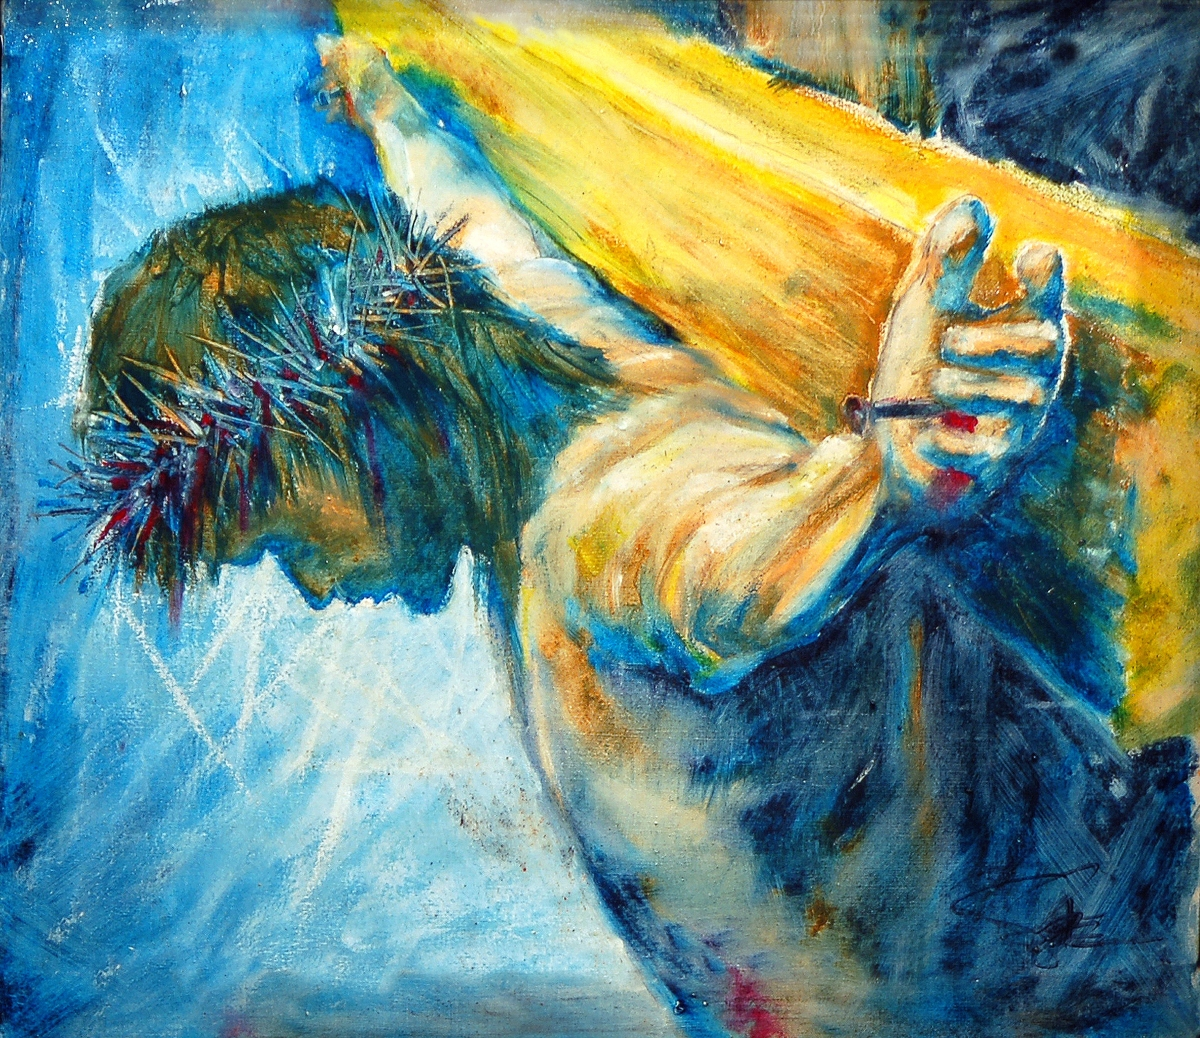 This work and the studies were created within a film project that portrays the last day of Jesus through art.  We tend to focus on the divine nature of Jesus as the Christ, but find it hard to relate to Jesus as a real person, but he was very real, and at (large view)